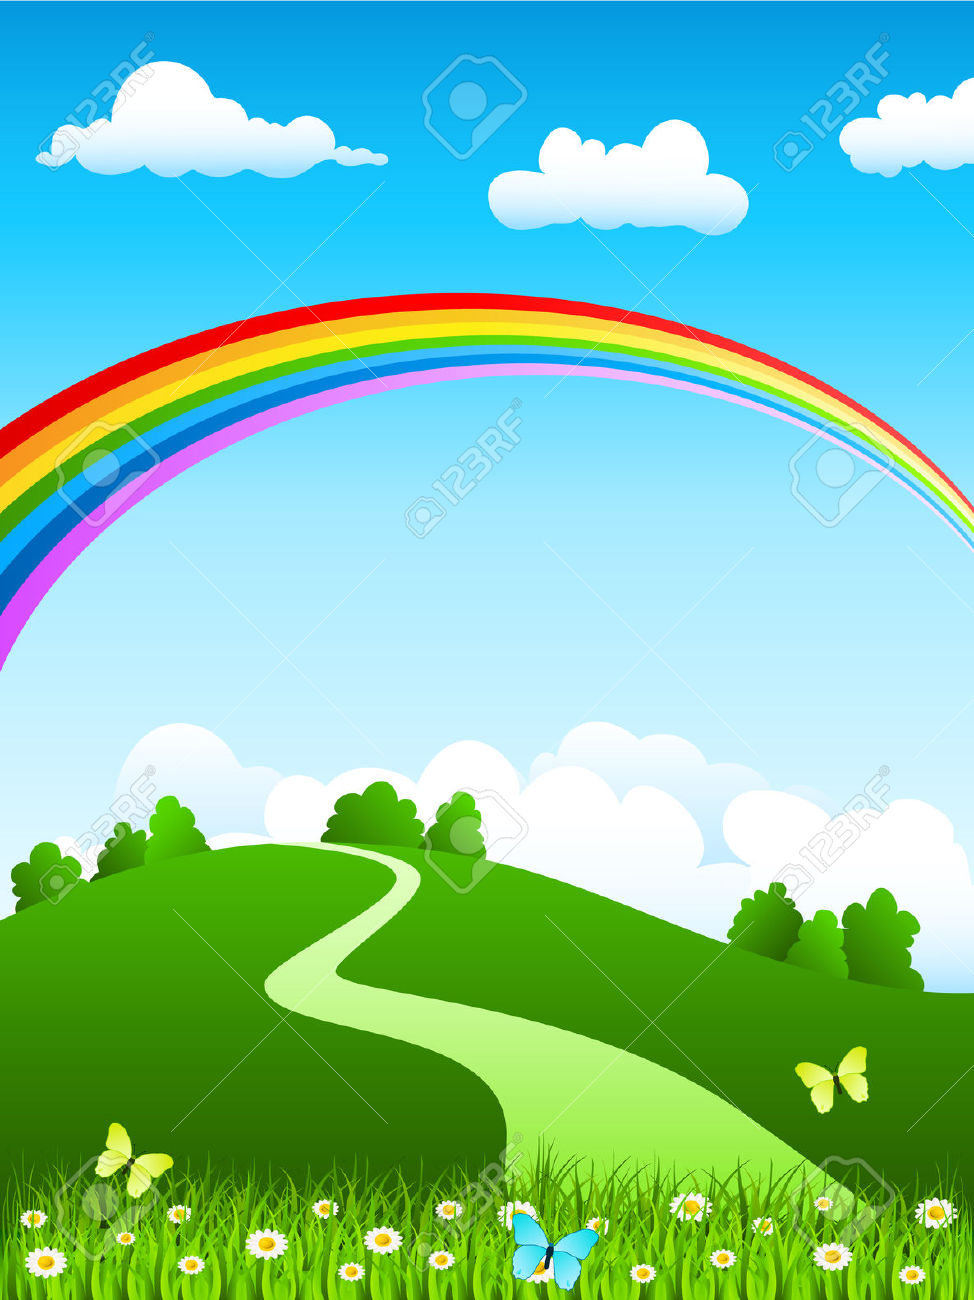 Beautiful garden with rainbow background clipart.